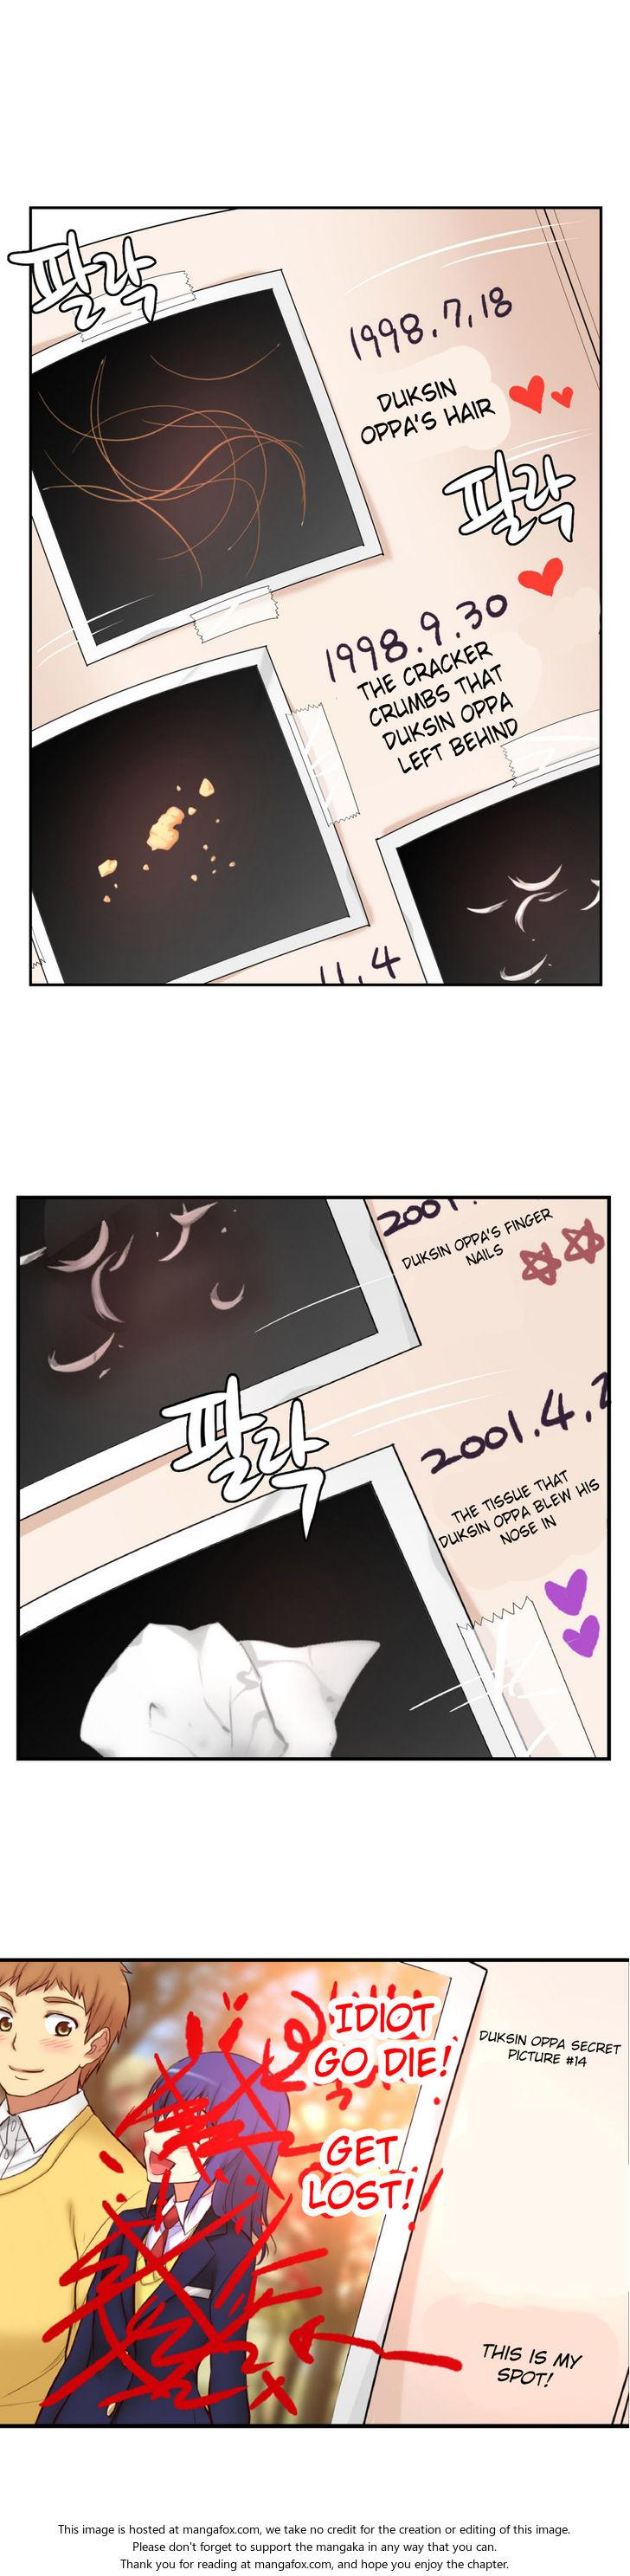 [Donggul Gom] She is Young (English) Part 1/2 1703